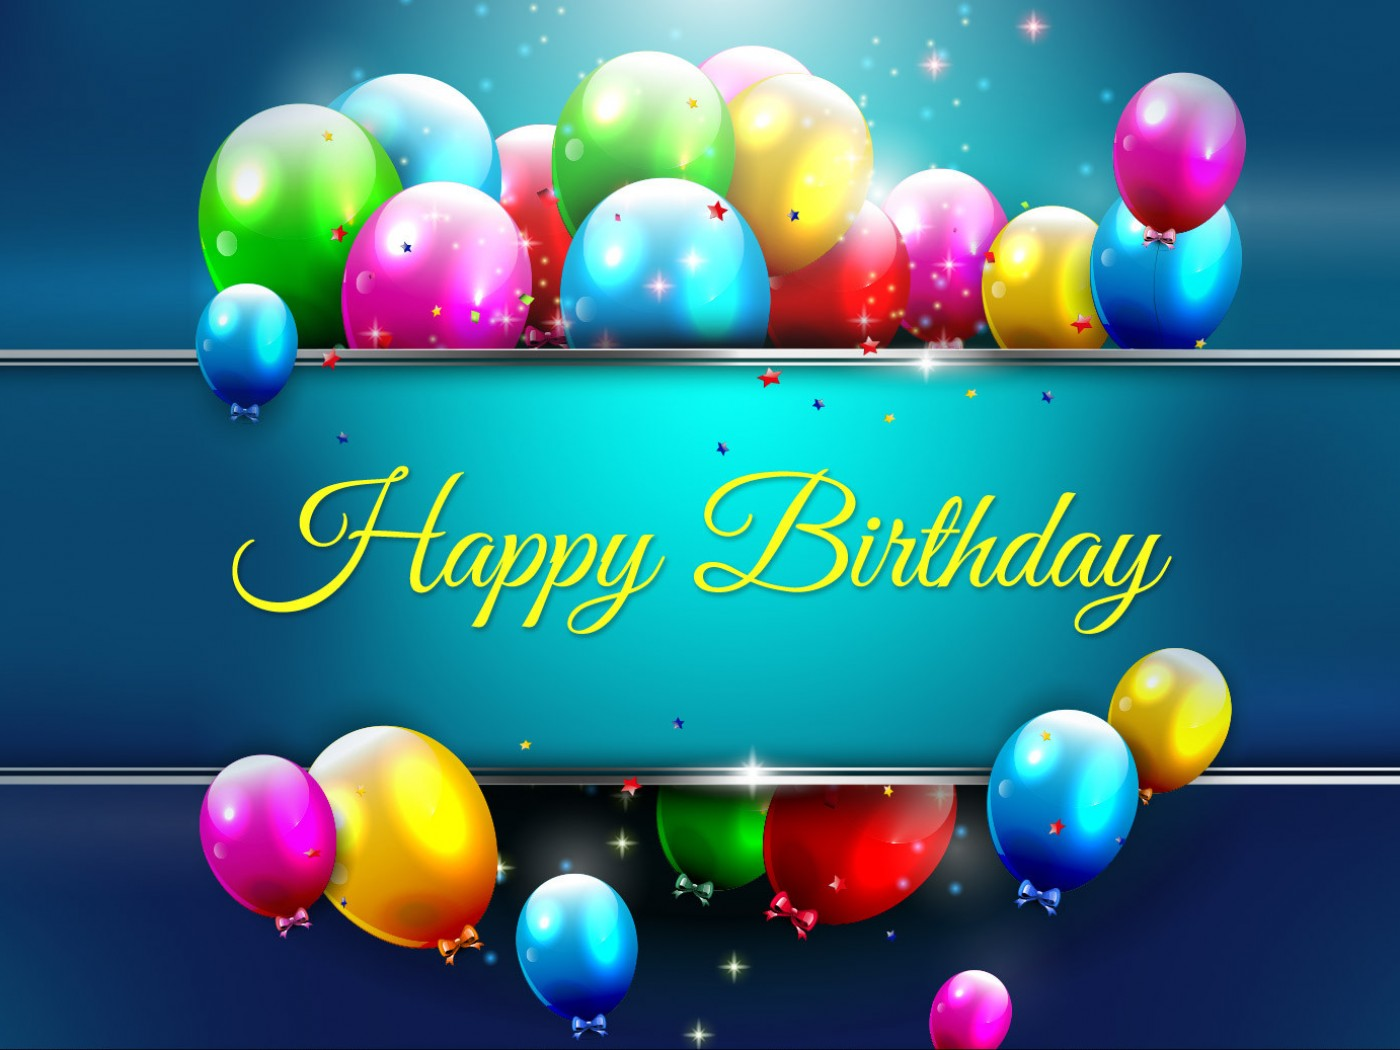 Happy Birthday wallpapers images and pics